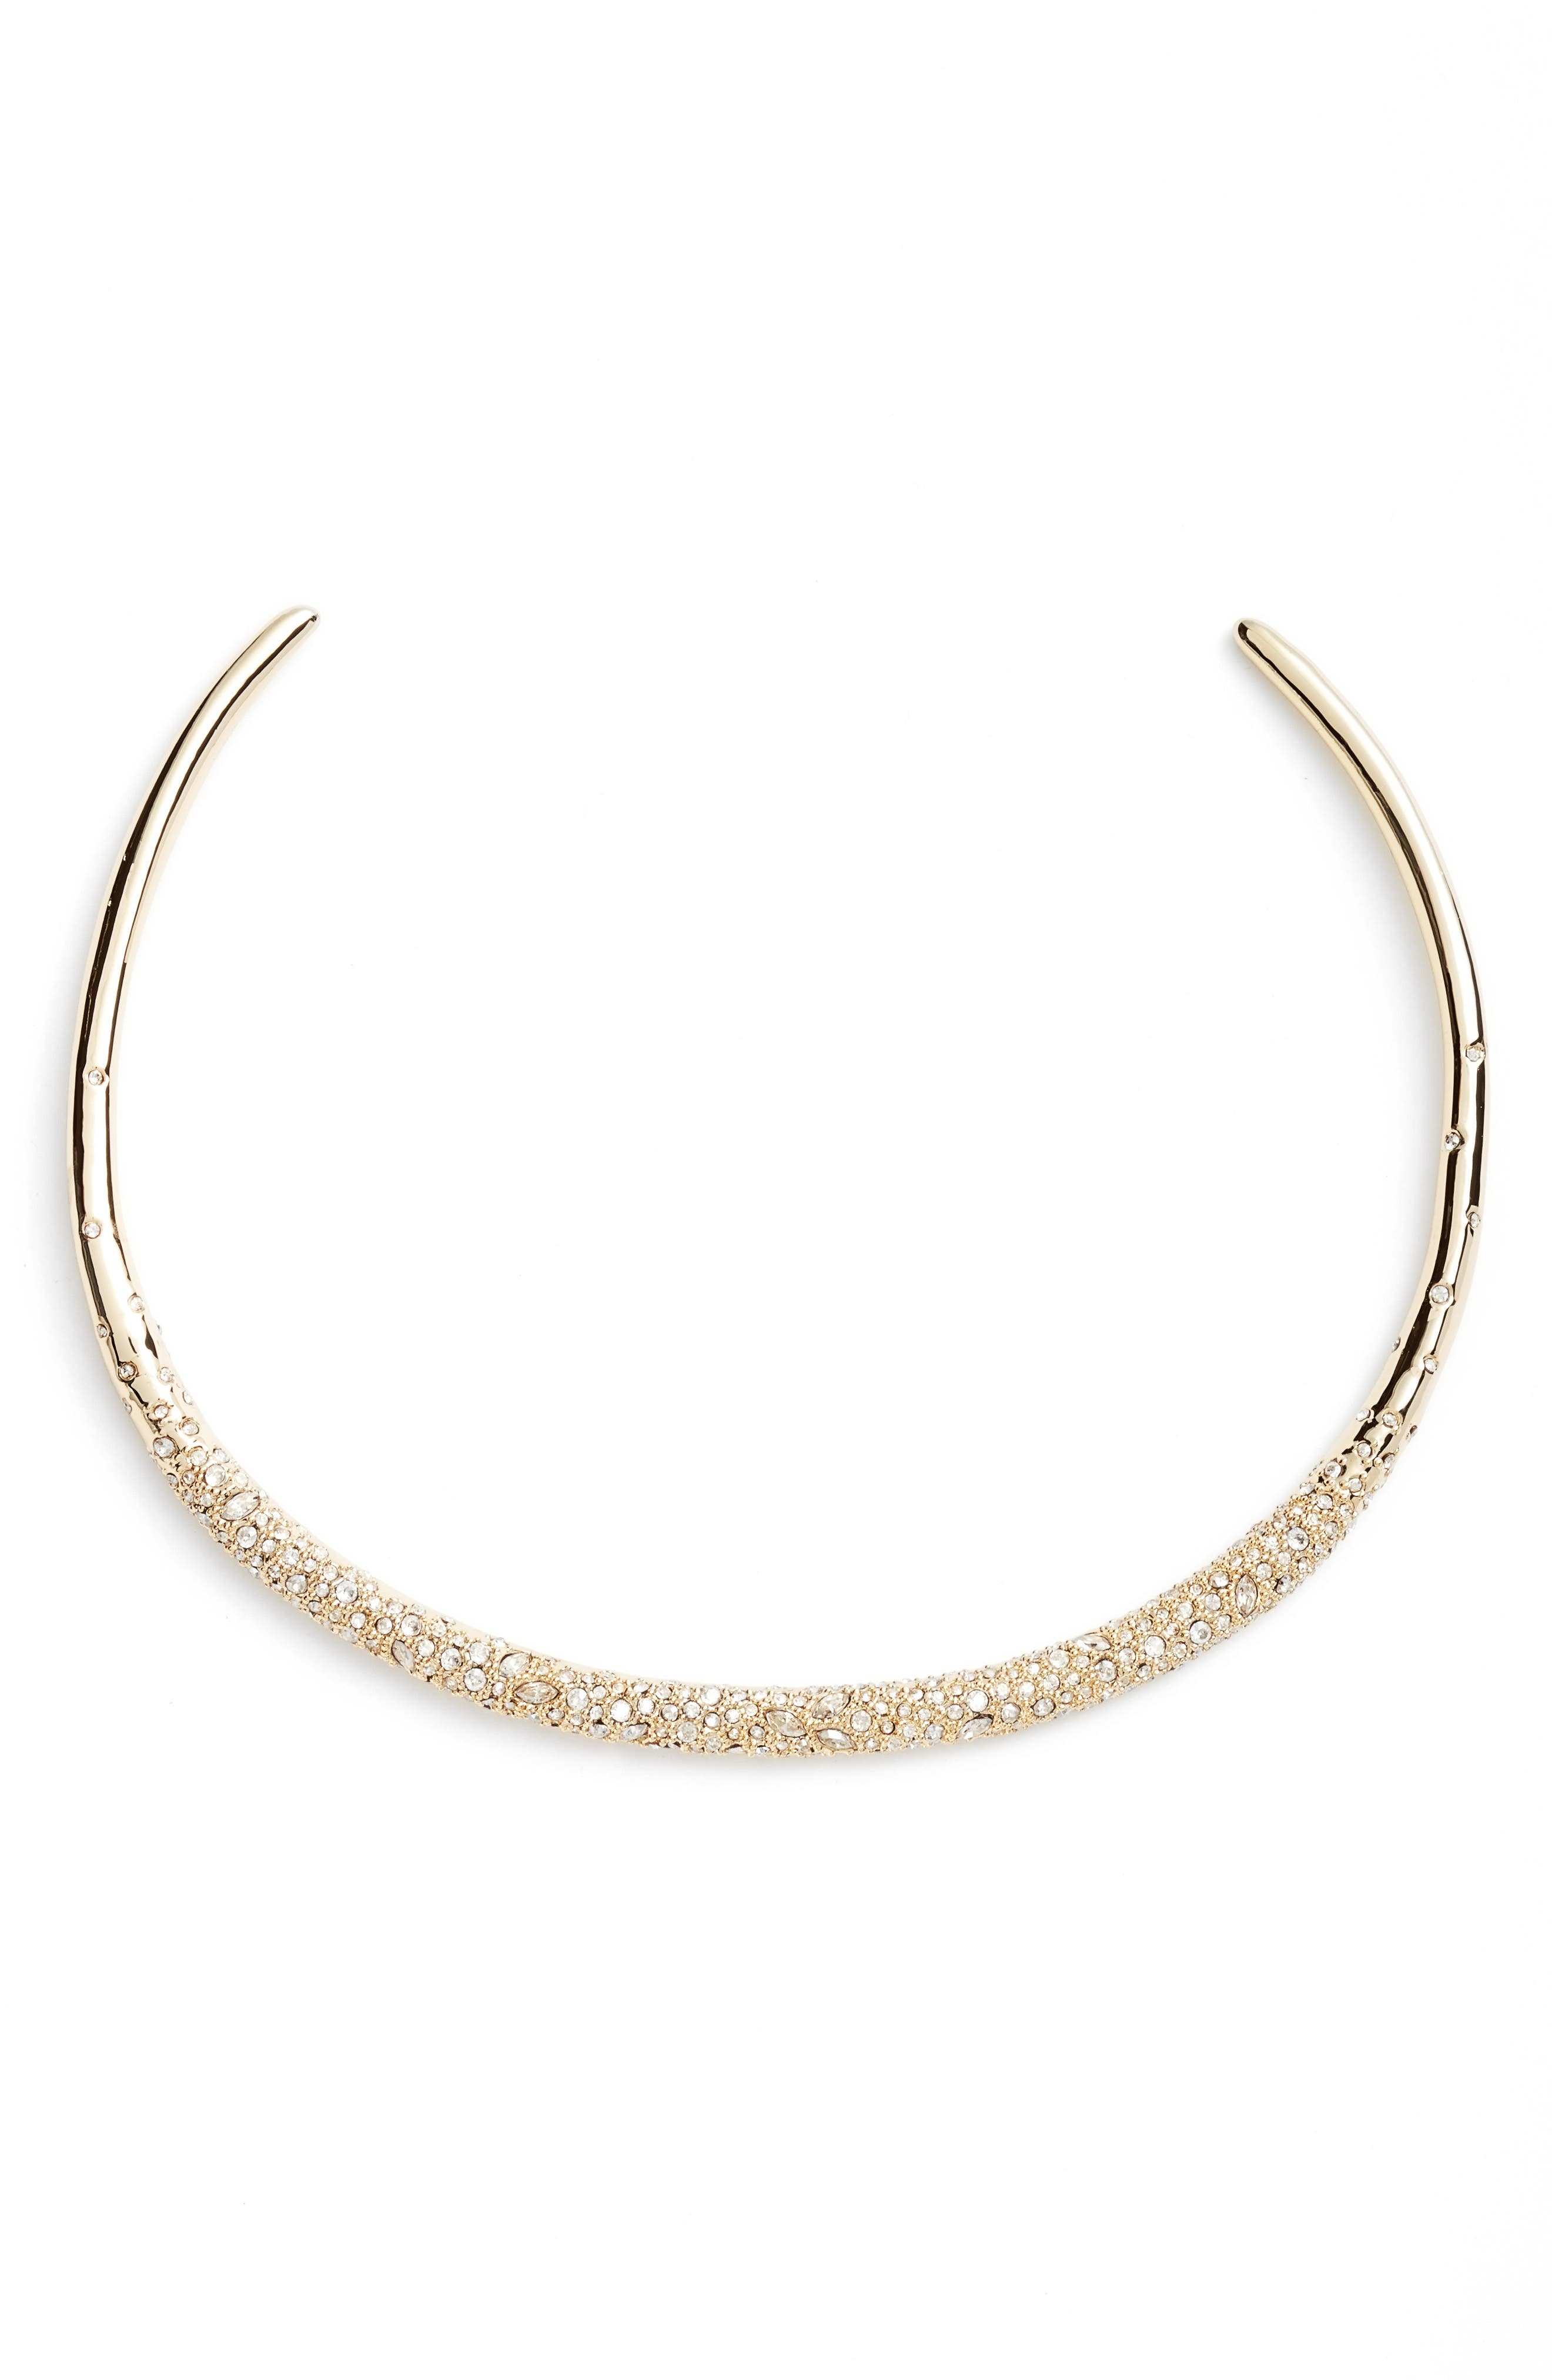 Thin Encrusted Collar Necklace,                             Main thumbnail 1, color,                             Crystal/ Gold